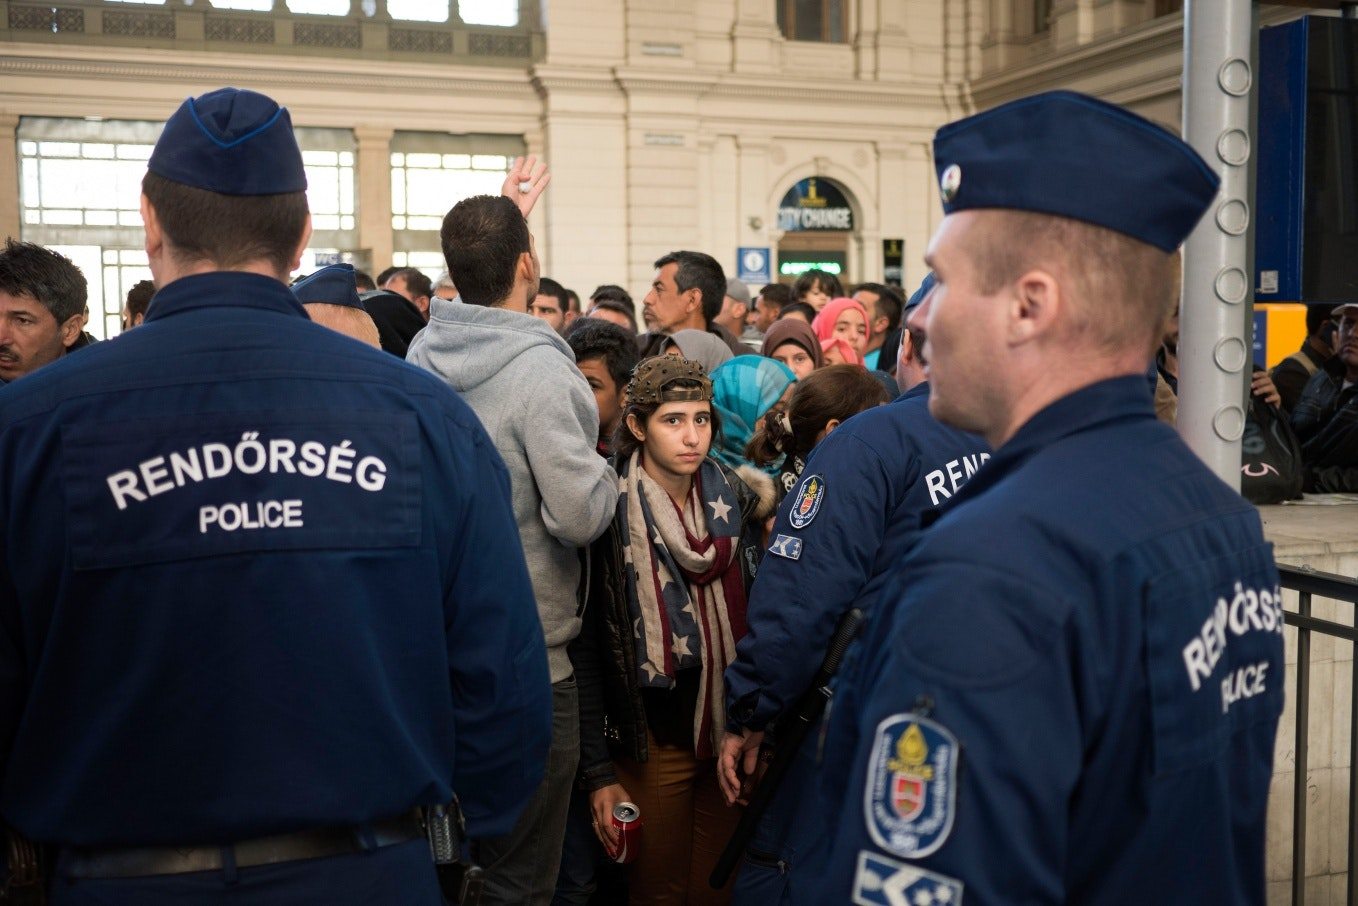 Refugees in a train station